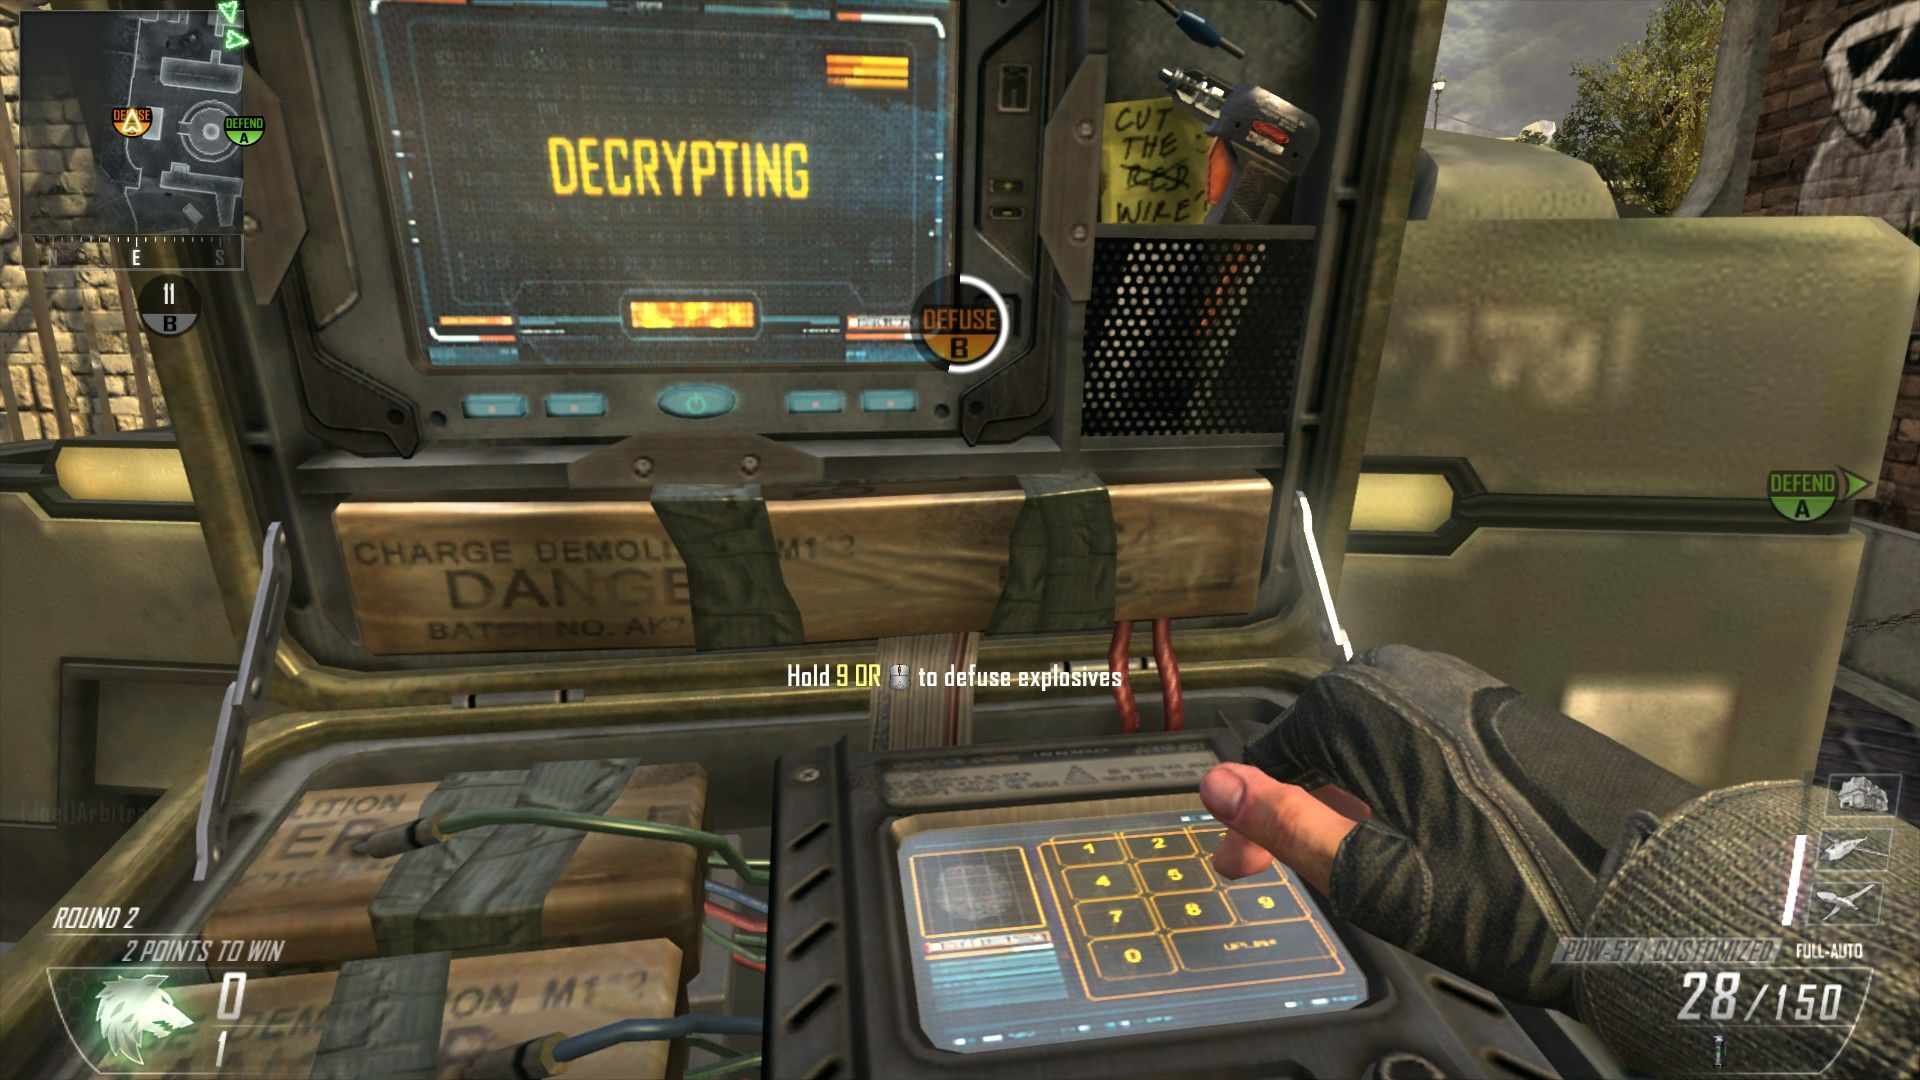 Call of Duty: Black Ops II Windows Defusing the bomb in demolition.